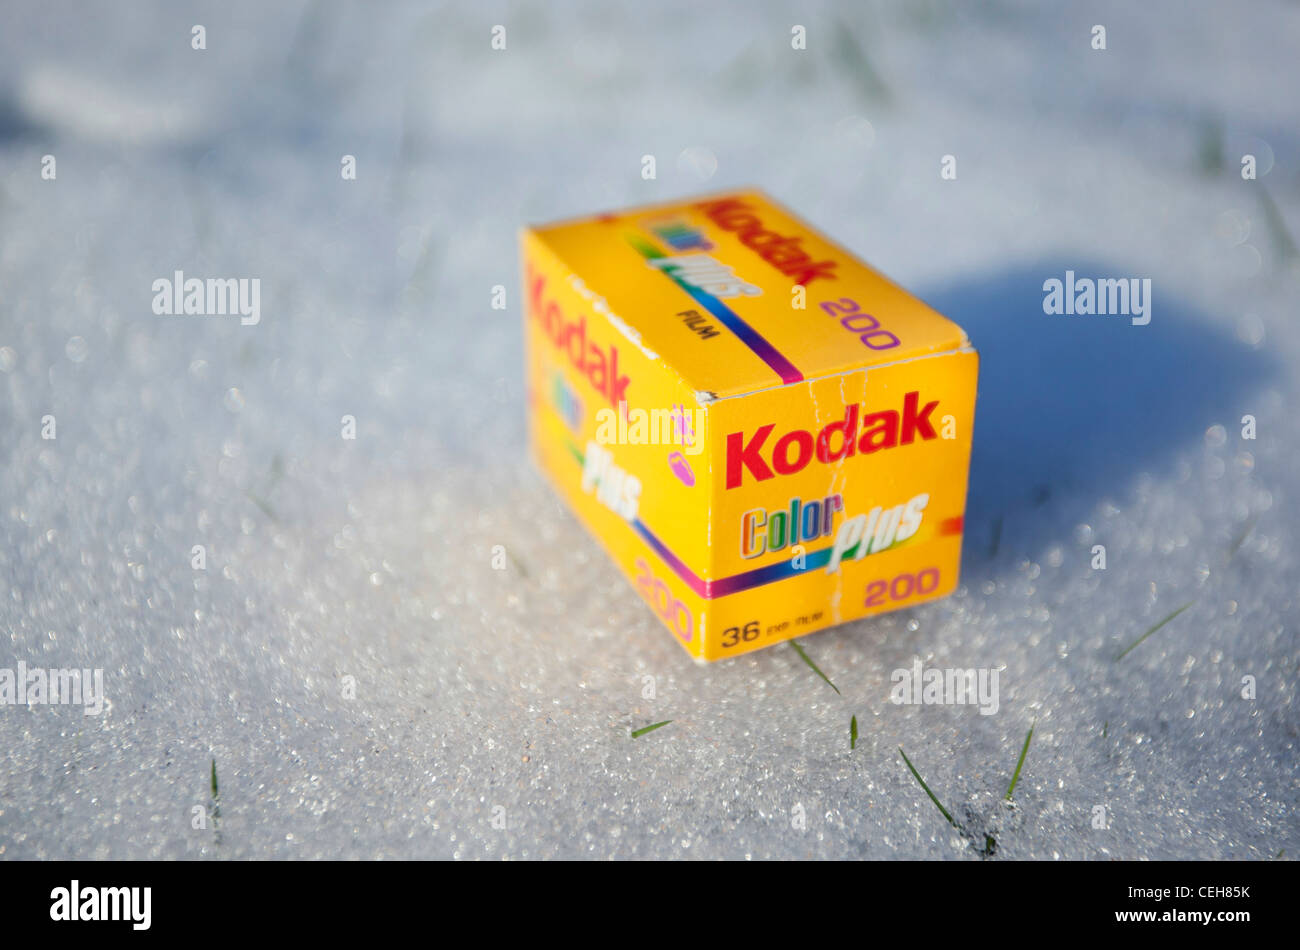 Film Kodak fort sur la neige Photo Stock